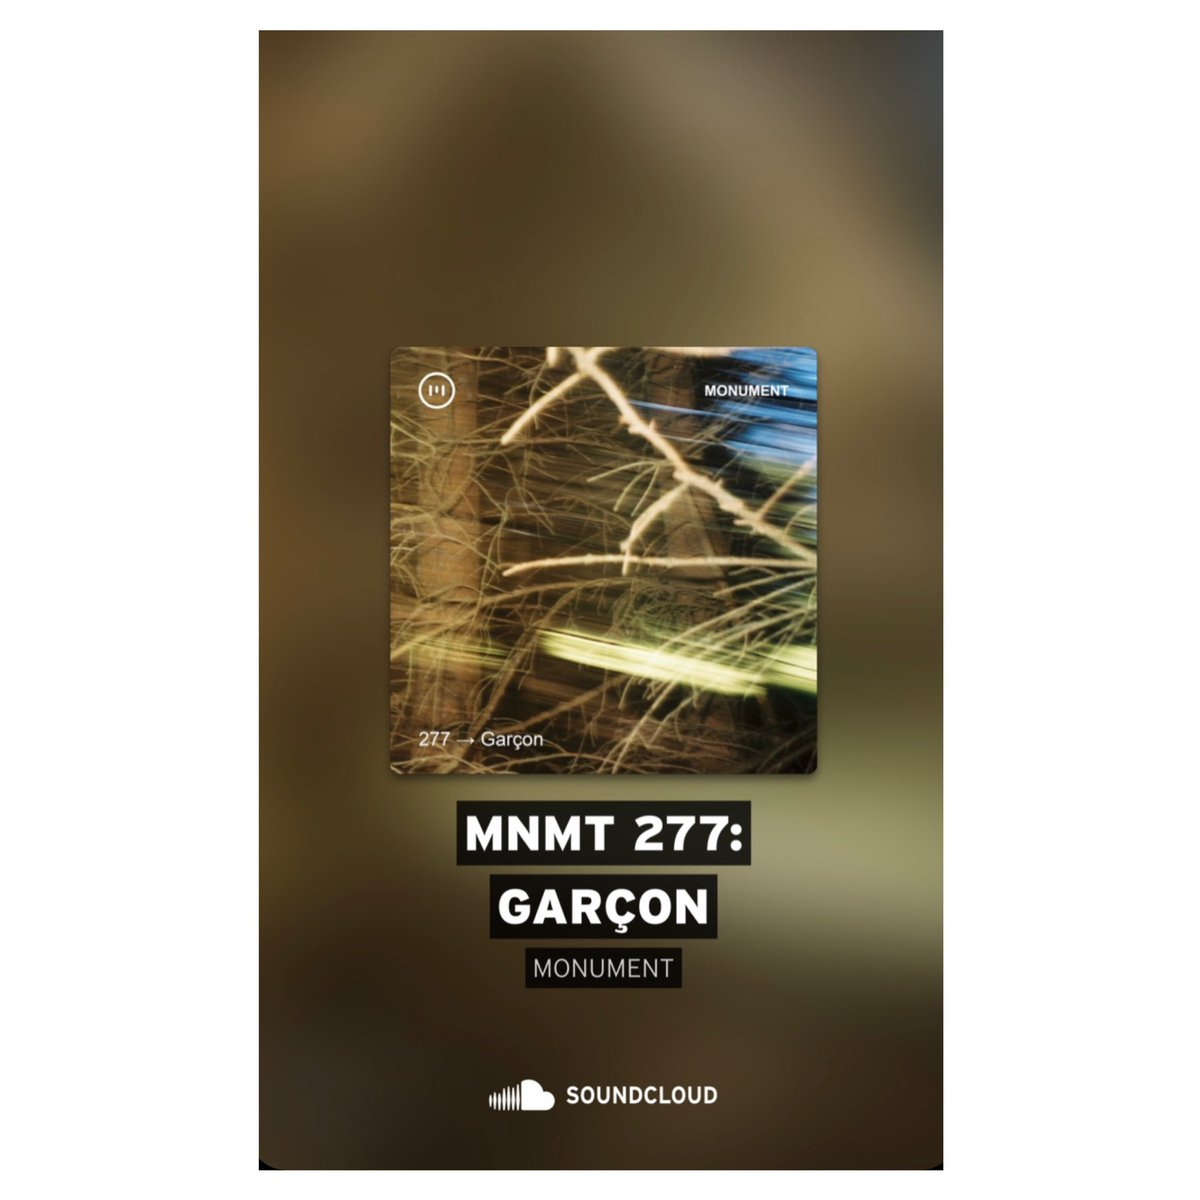 💙The best mix I listened this week💙  🔮 MNMT 277: Garçon by MONUMENT 🔮 Lost In Ether | Podcast #175 | The Lady Machine by Lost In Ether 🔮 Mix 096: Will Oirson by Sure Thing  #SoundCloud  #techno #deeptechno #mix #dj #djmix #dance #club #ambient #residentadvisor https://t.co/pnBlRJ7SeF